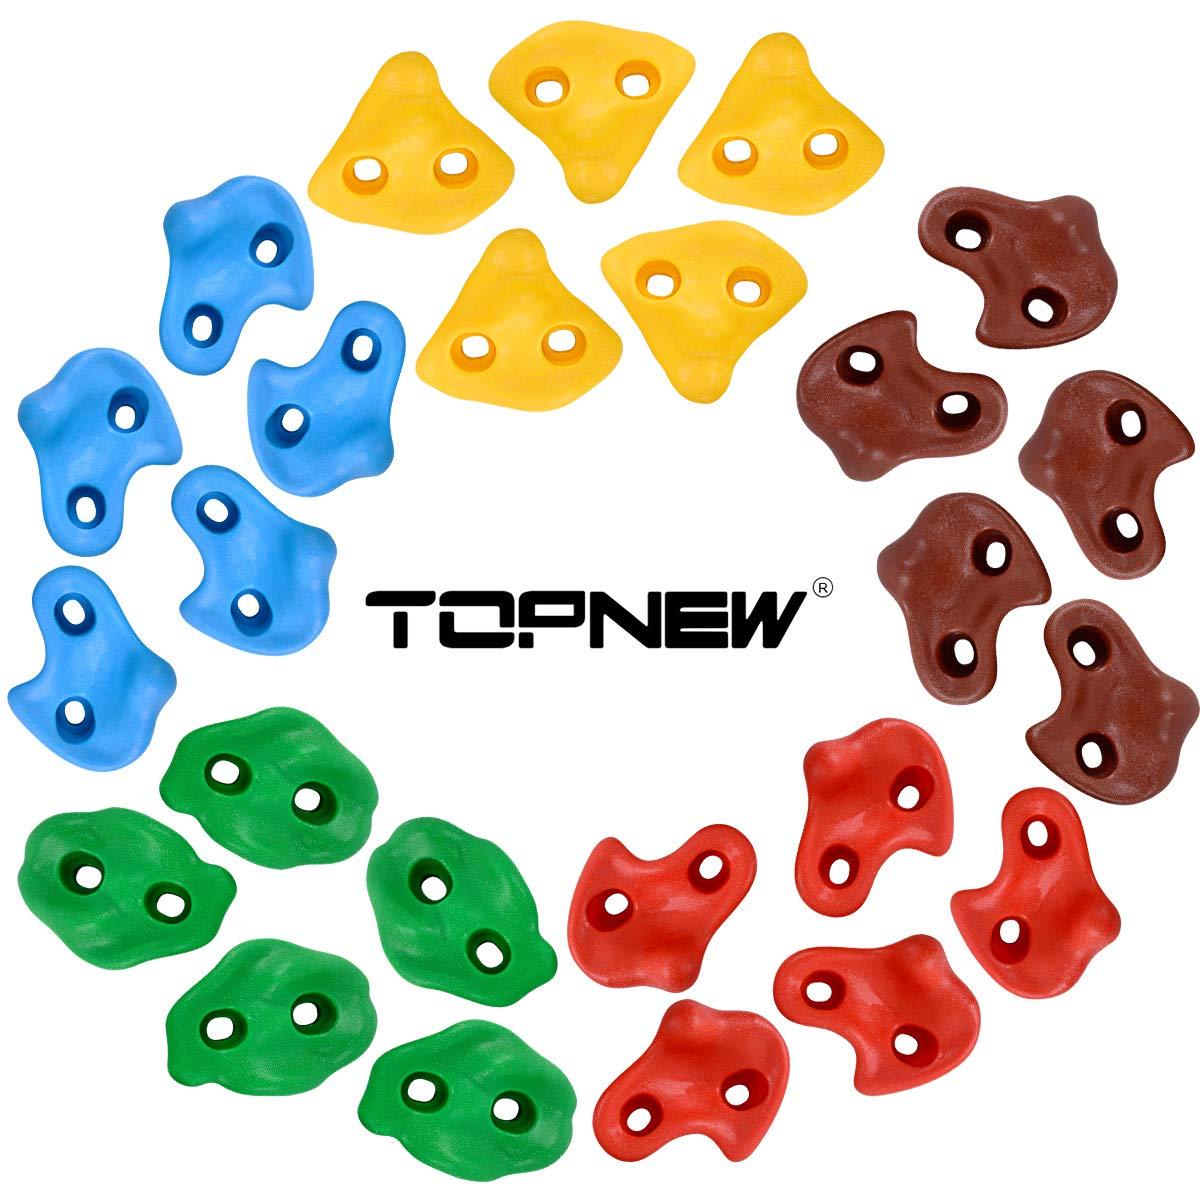 TOPNEW 25 Rock Climbing Holds for Kids and Adults, Large Rock Wall Grips for Indoor and Outdoor Play Set - Build Rock Climbing Wall with 2 Inch Mounting Hardware by TOPNEW